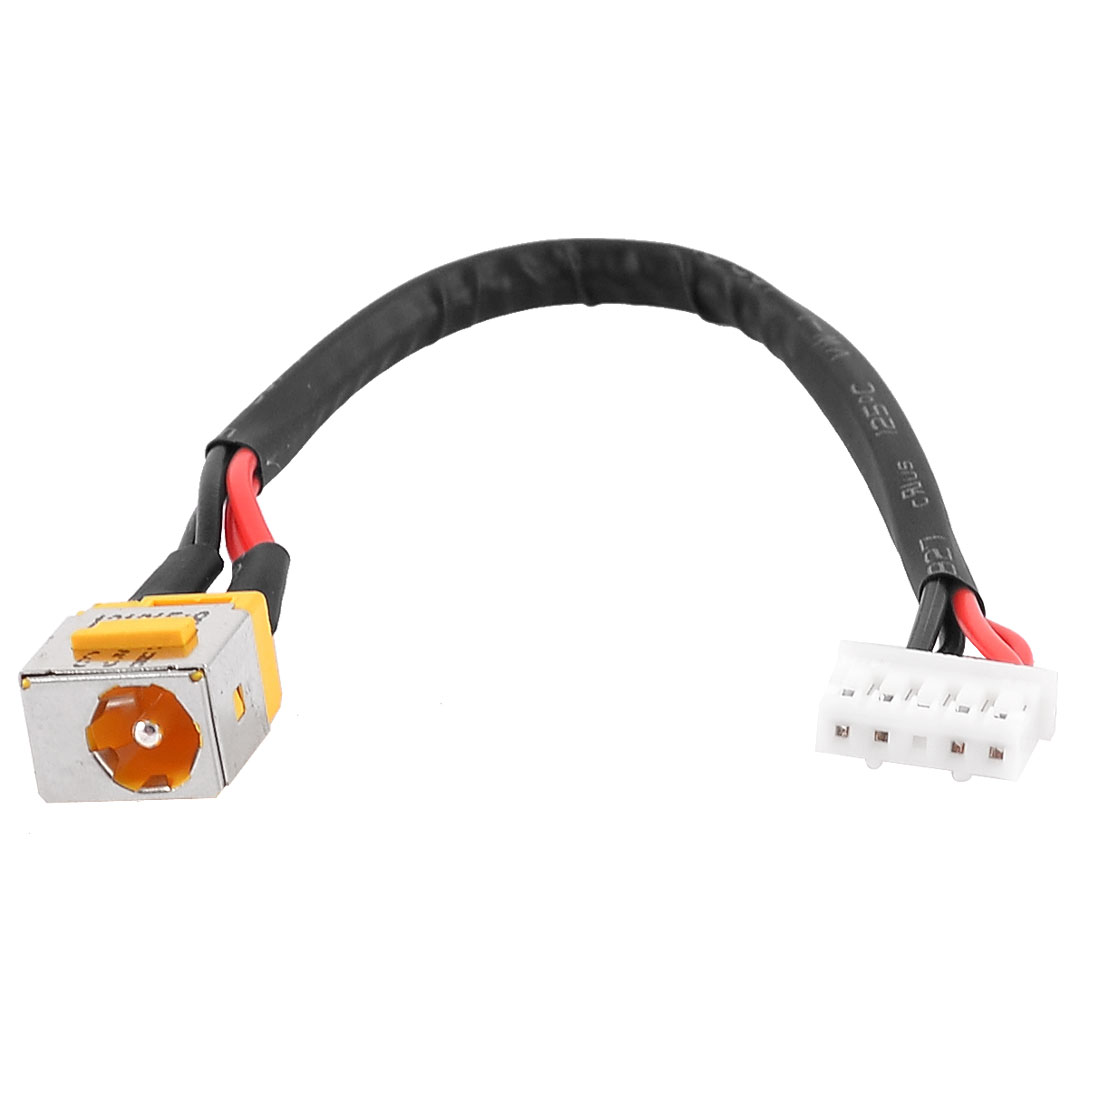 PJ424 1.65mm Center Pin DC Power Jack 4 Pins Cable for Acer Extensa 56302